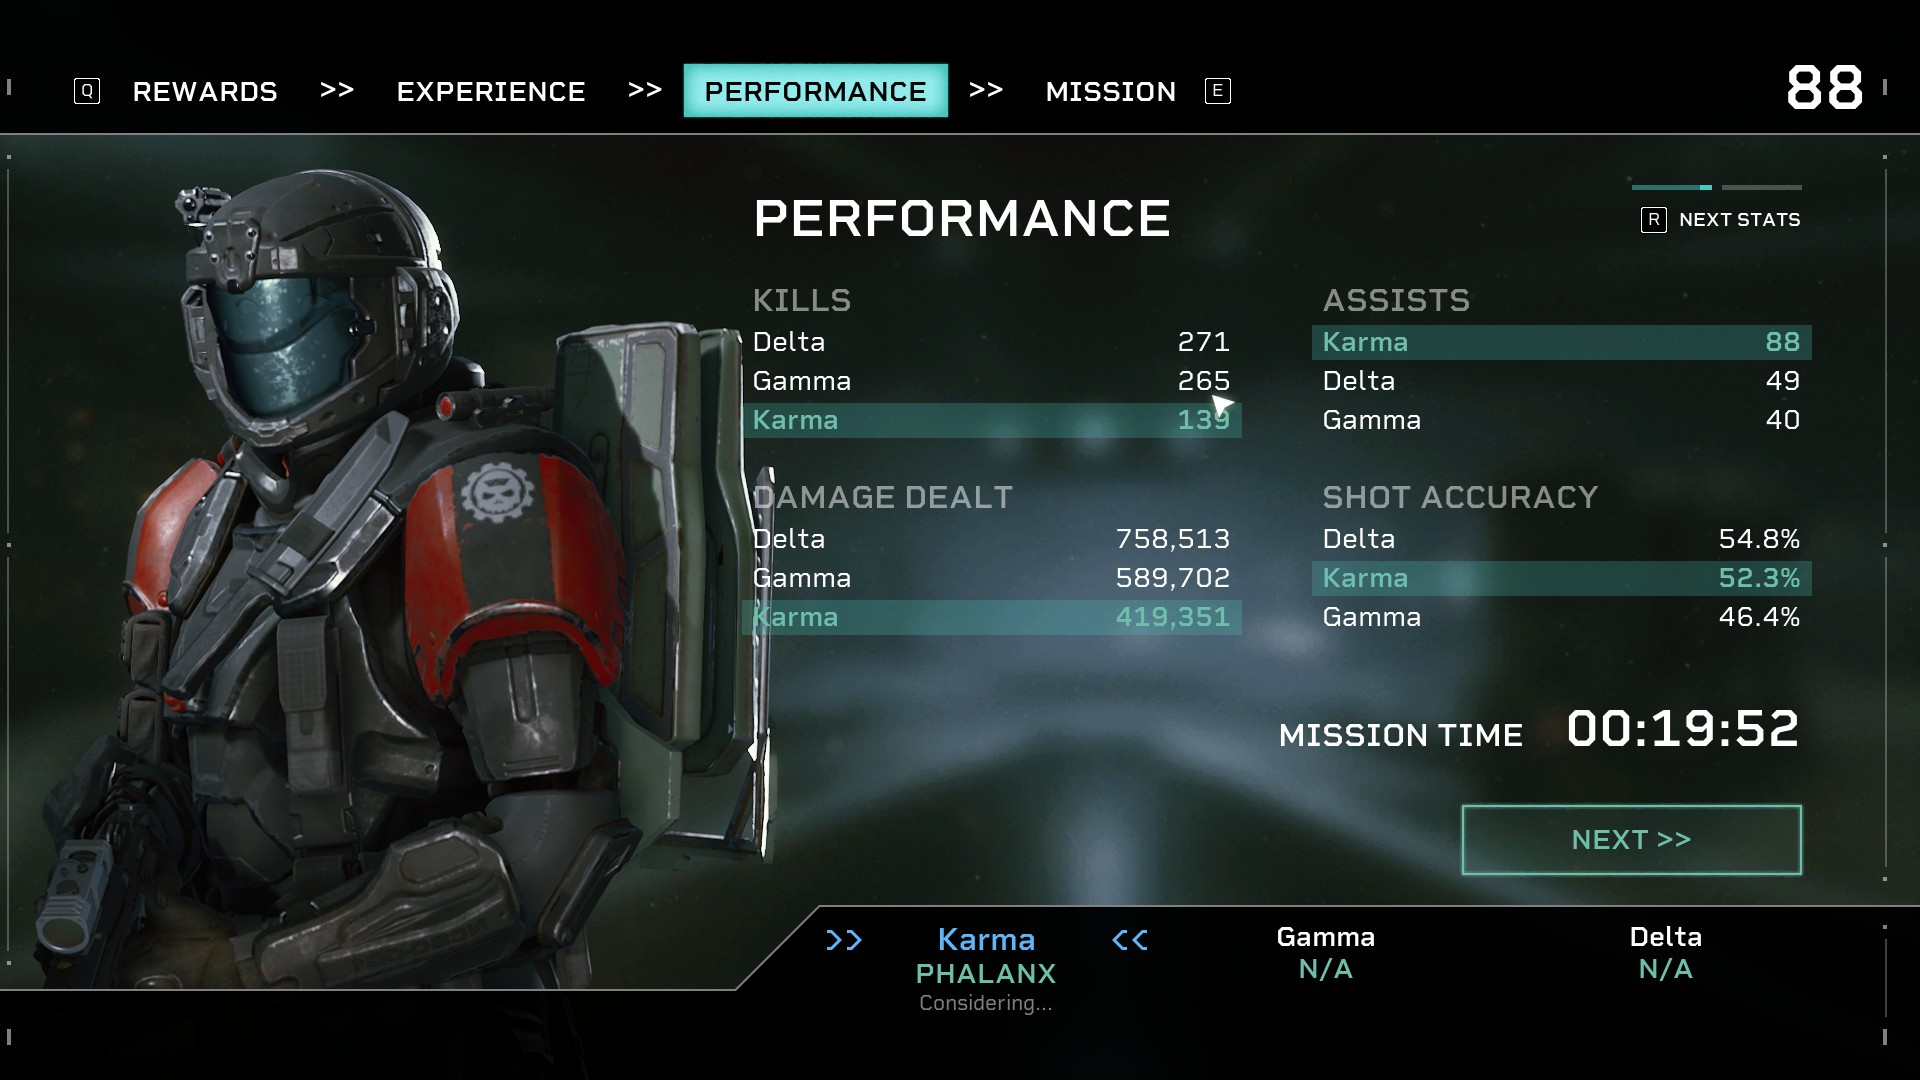 Aliens: Fireteam Elite Tips on How to Improve Bots in Game - Mod Tutorial - Battle Synths - 6524018